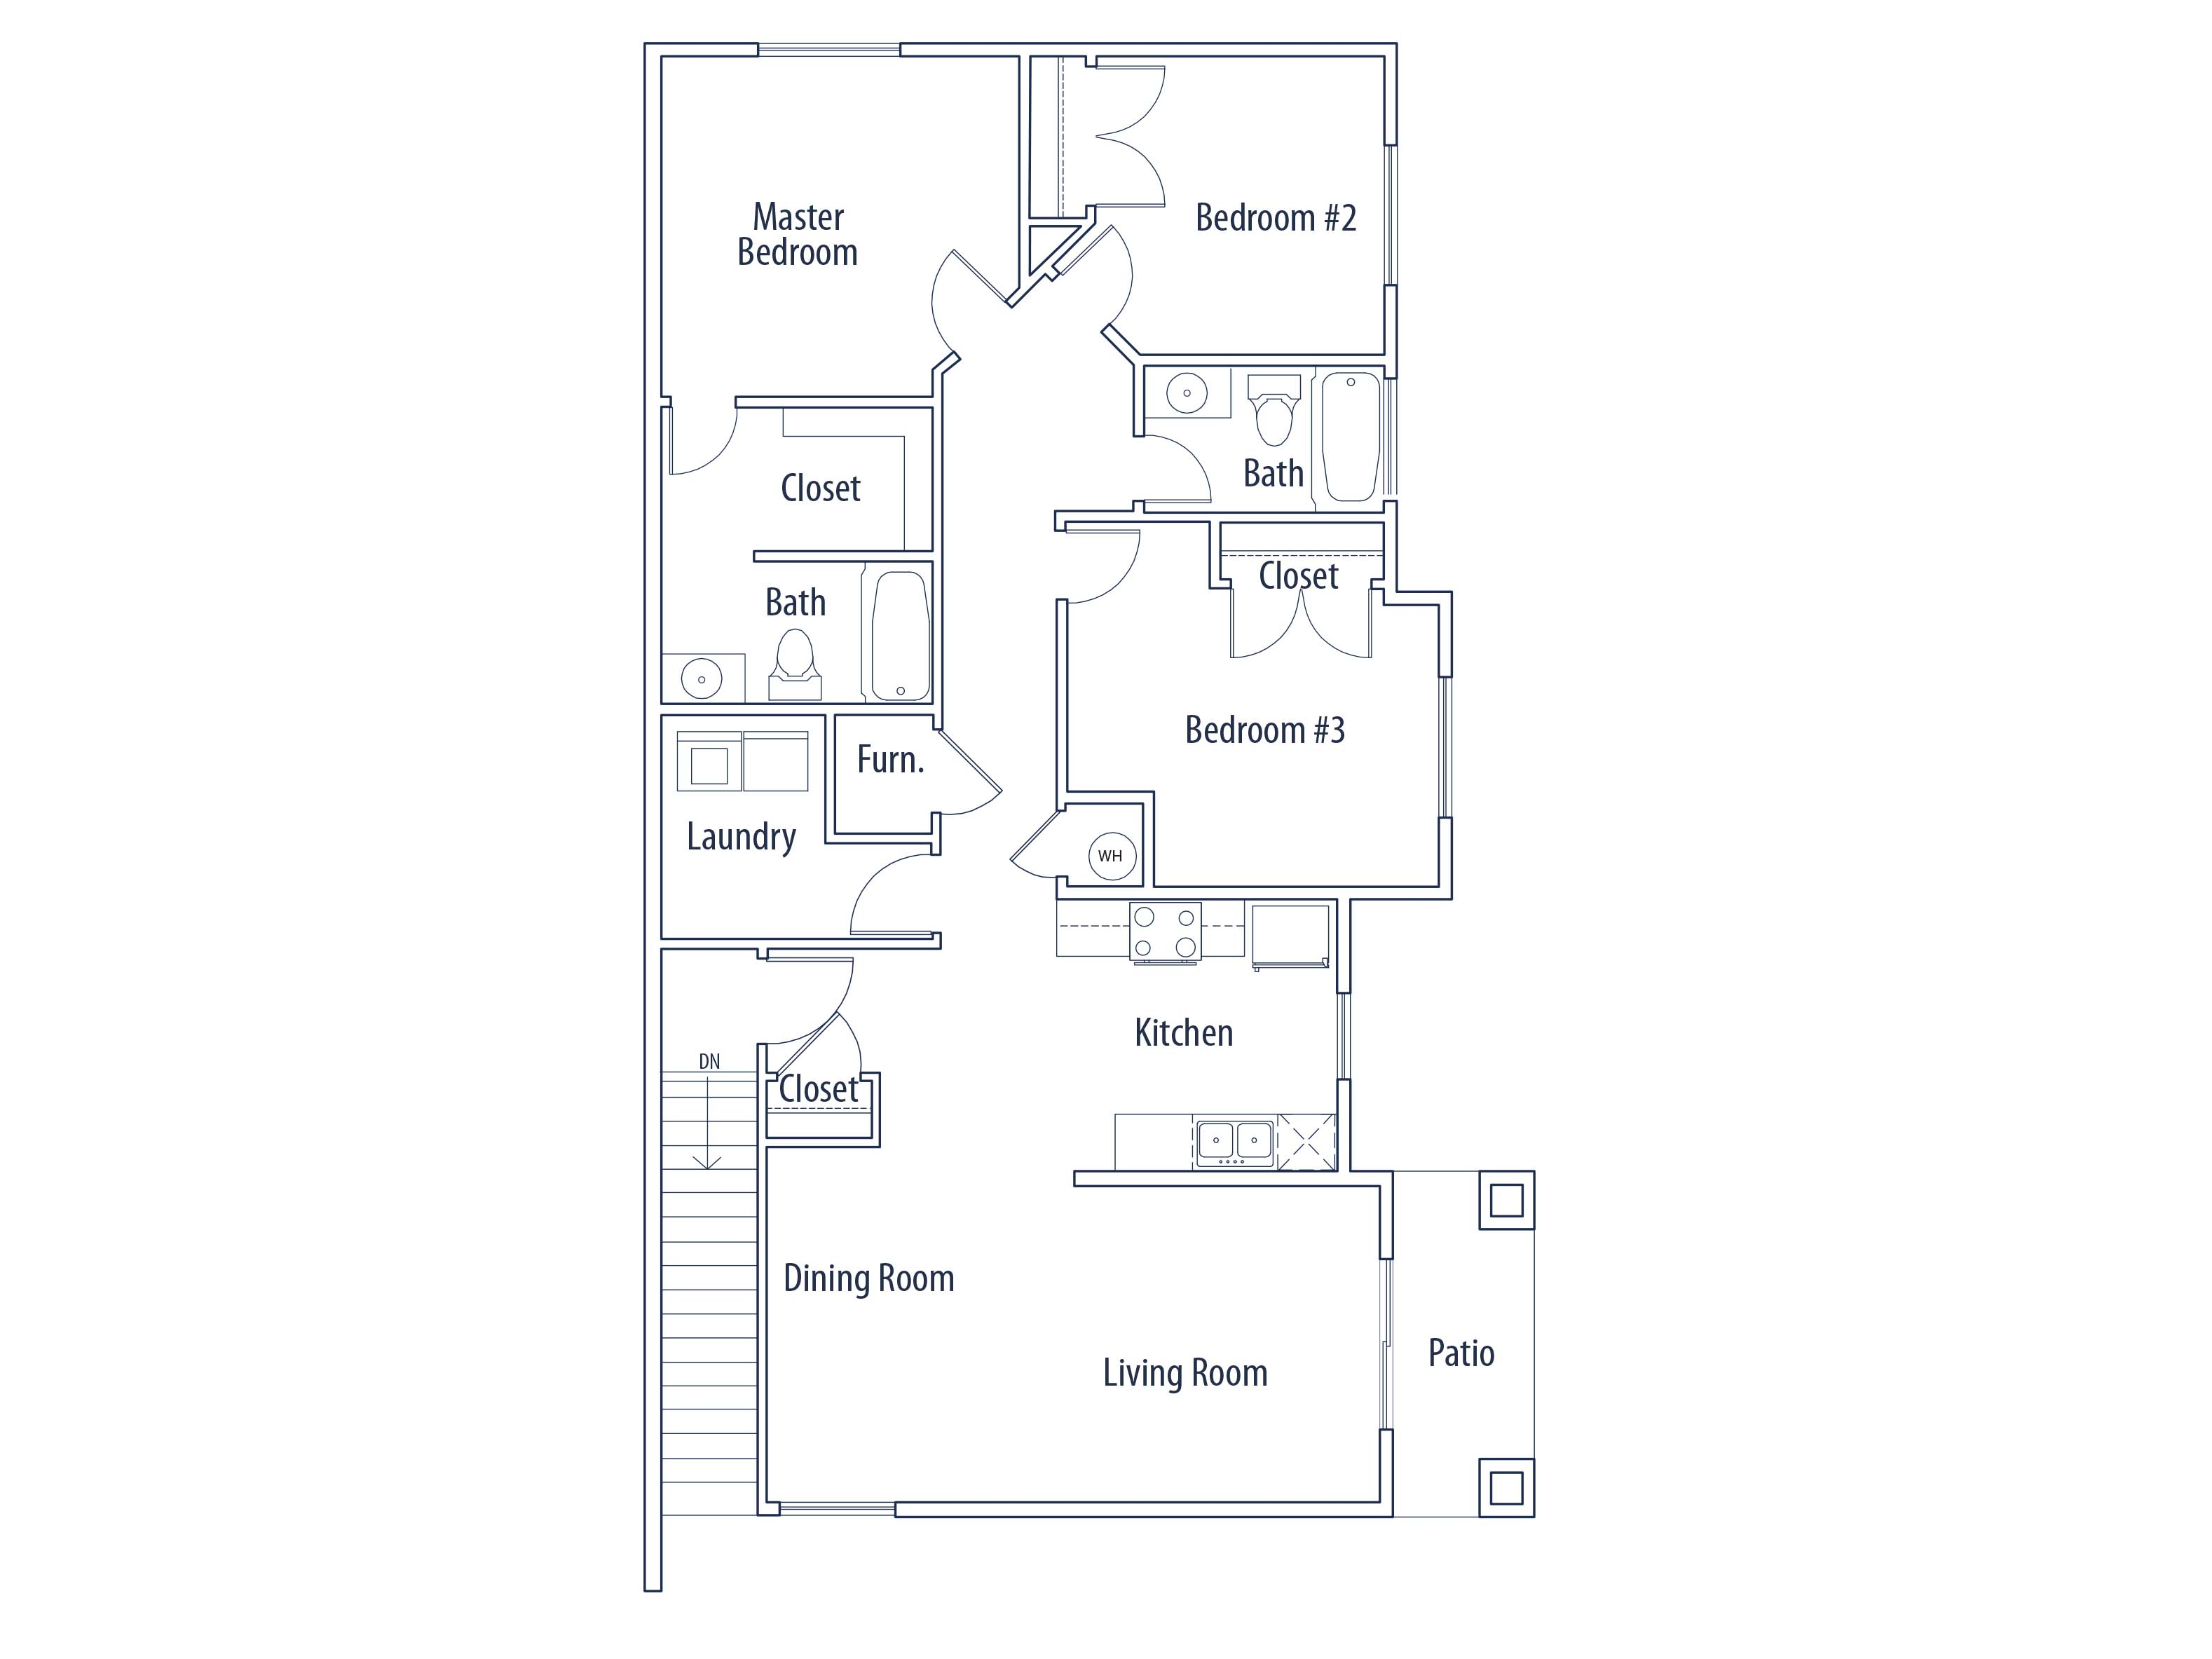 Floor Plans at Wilshire Place Apartments